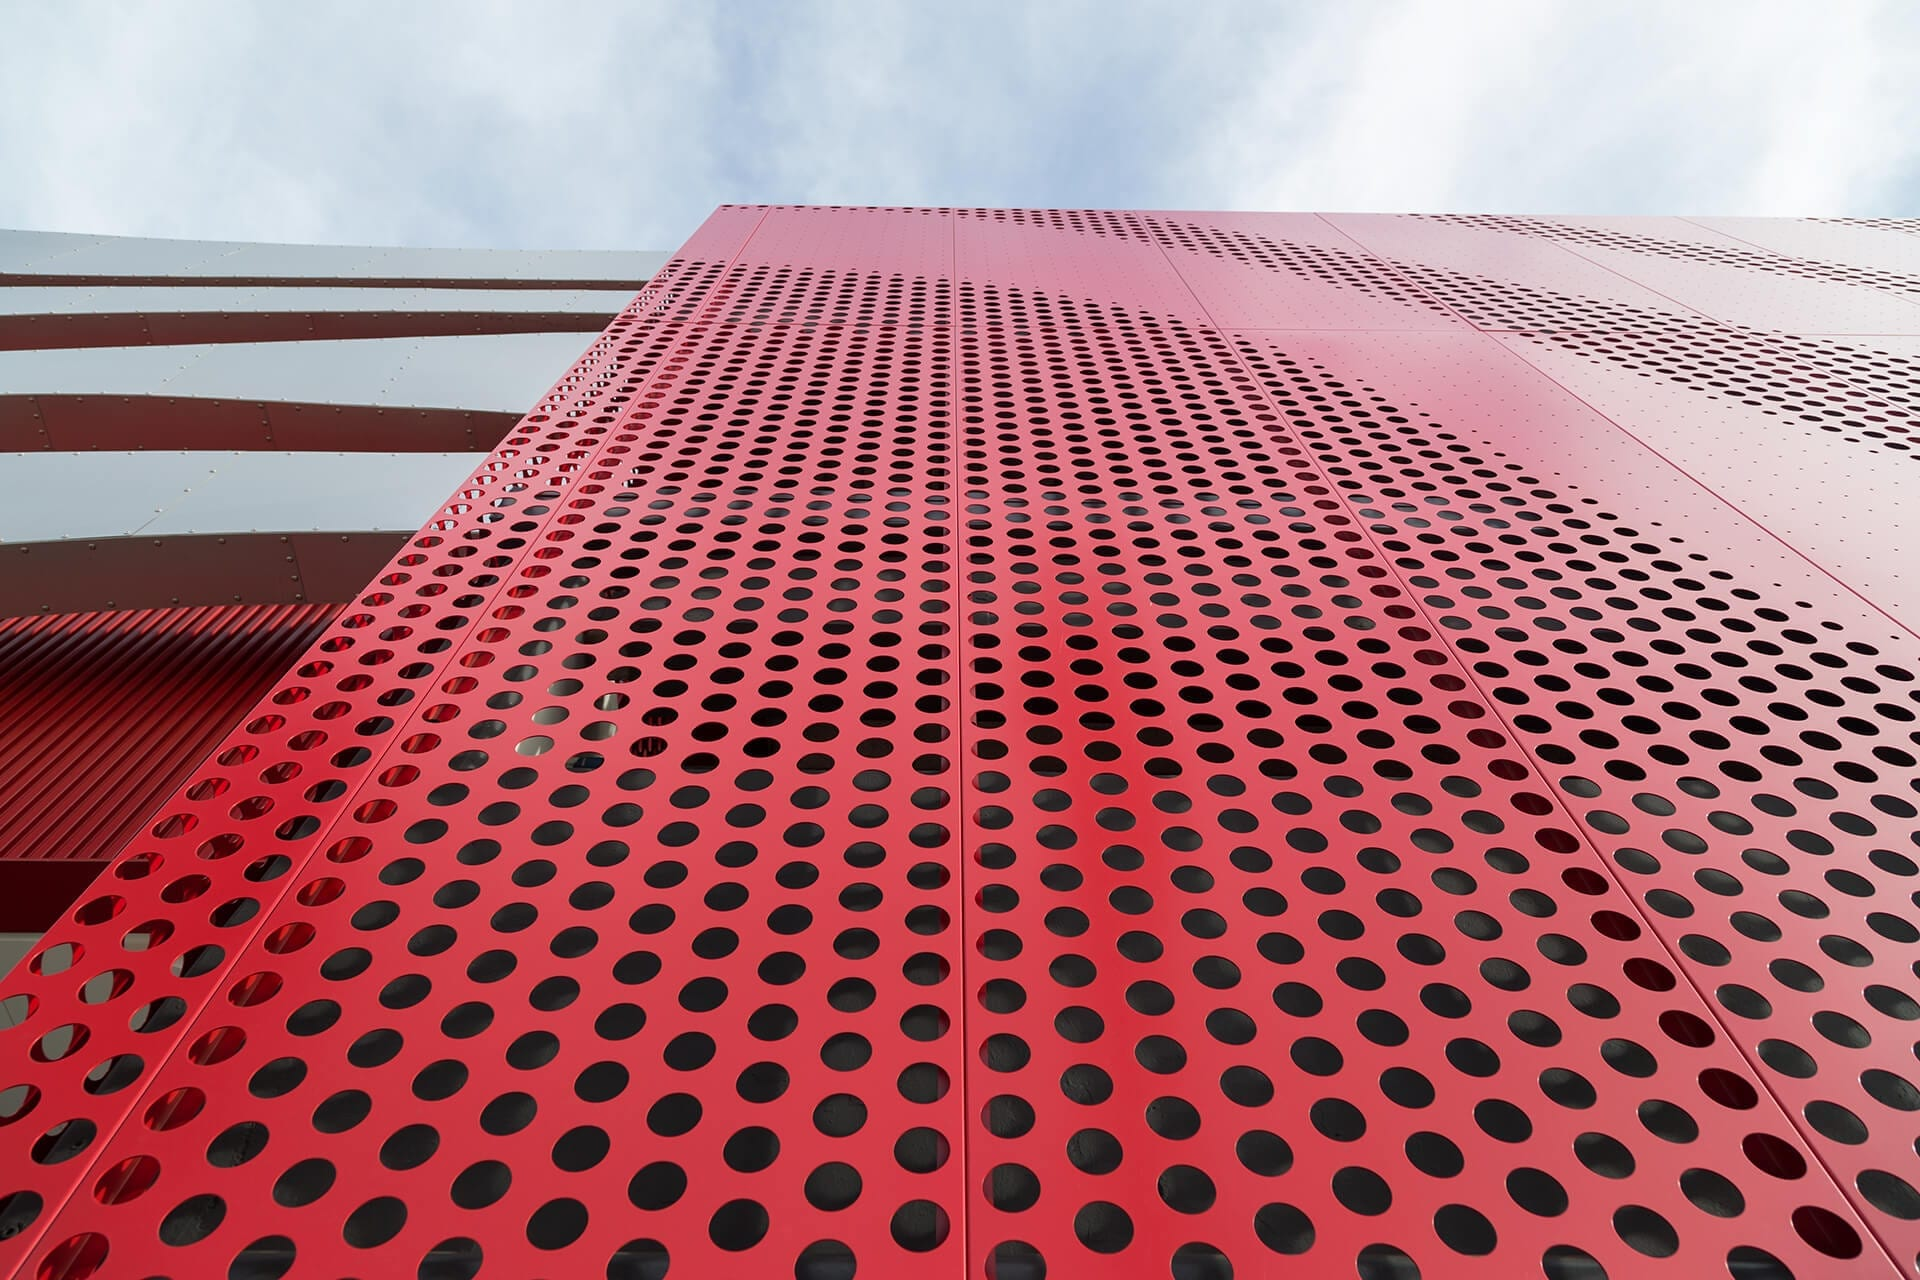 Detail of the screenwall facade of the Petersen Automotive Museum.